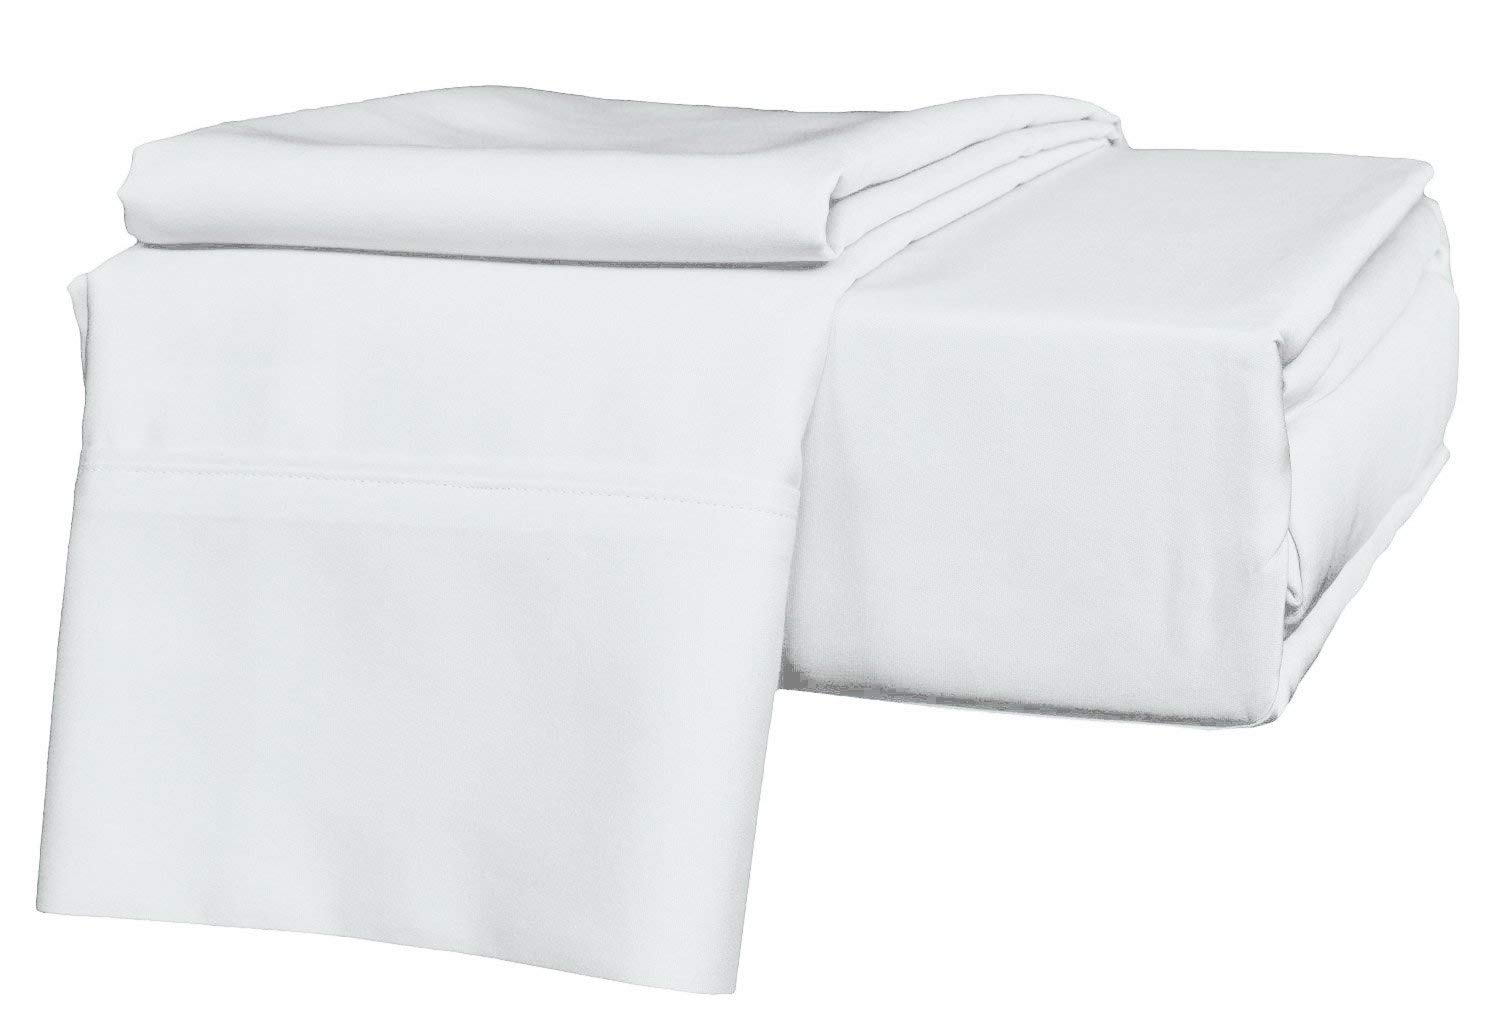 SGI Bedding Best Egyptian Cotton Sheets